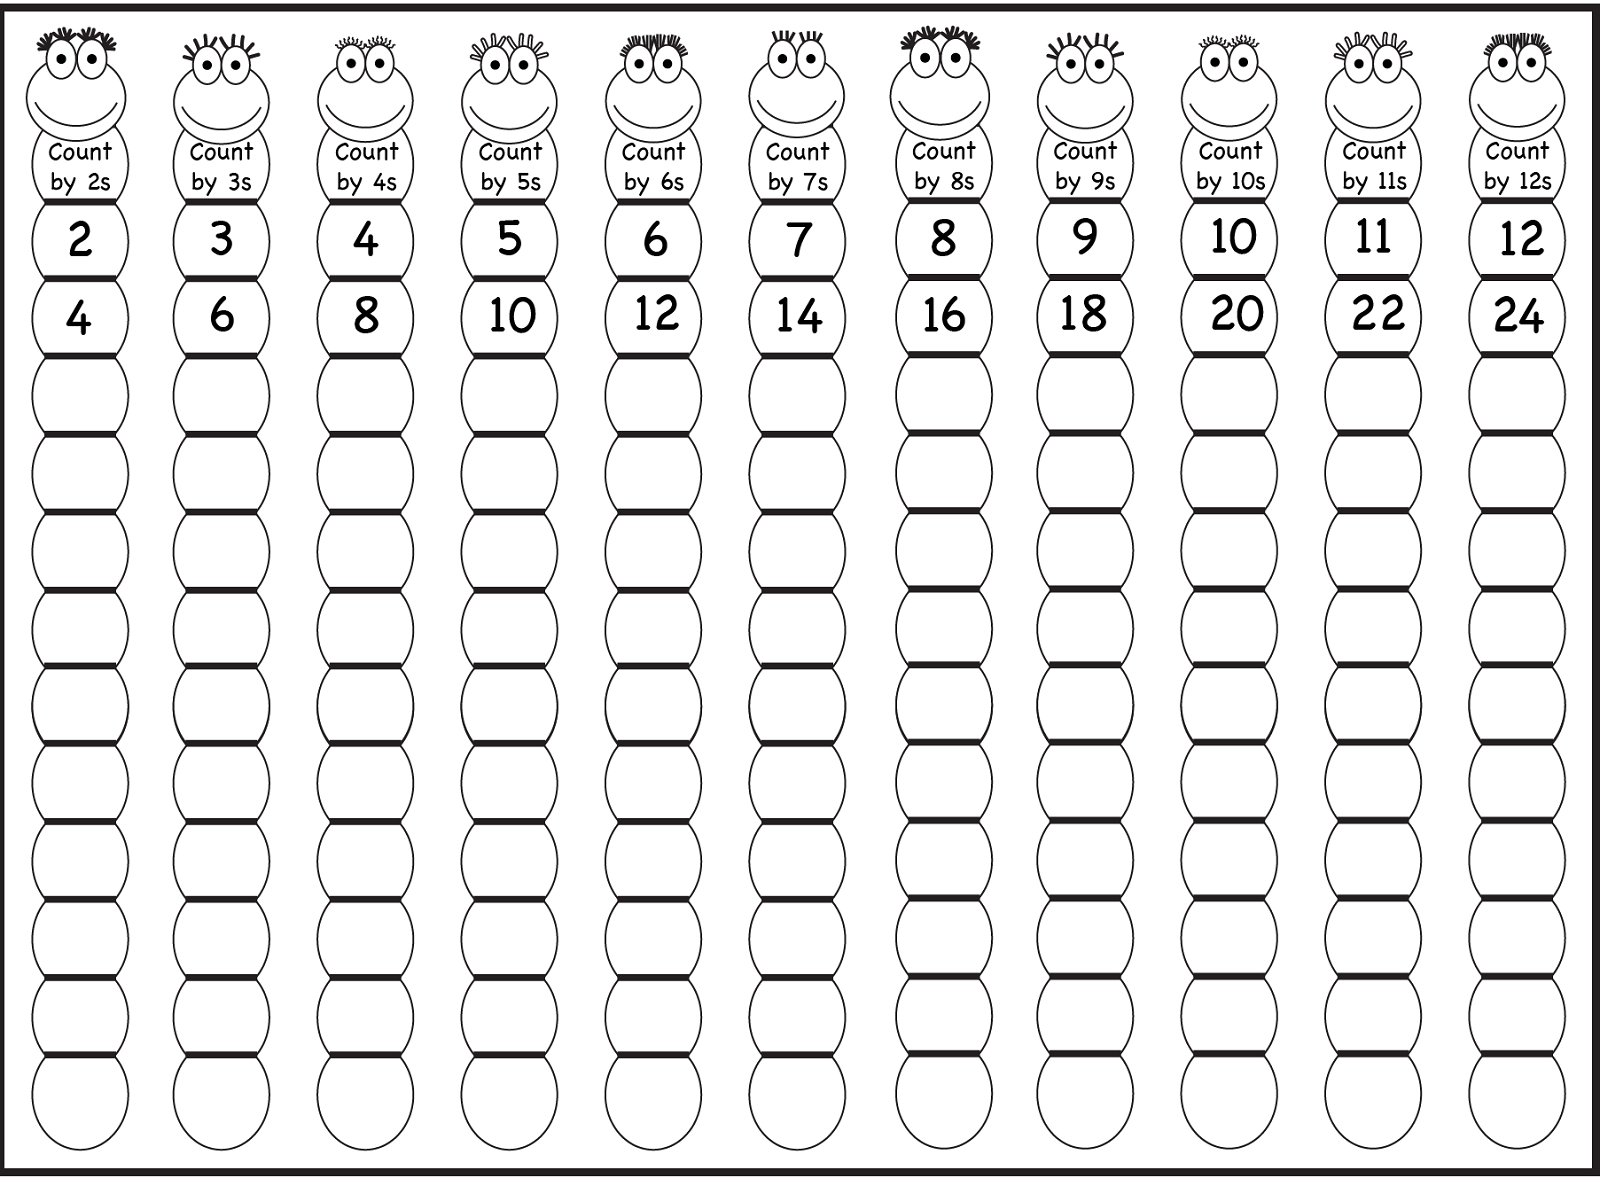 Counting By 2's 5's And 10's Worksheets